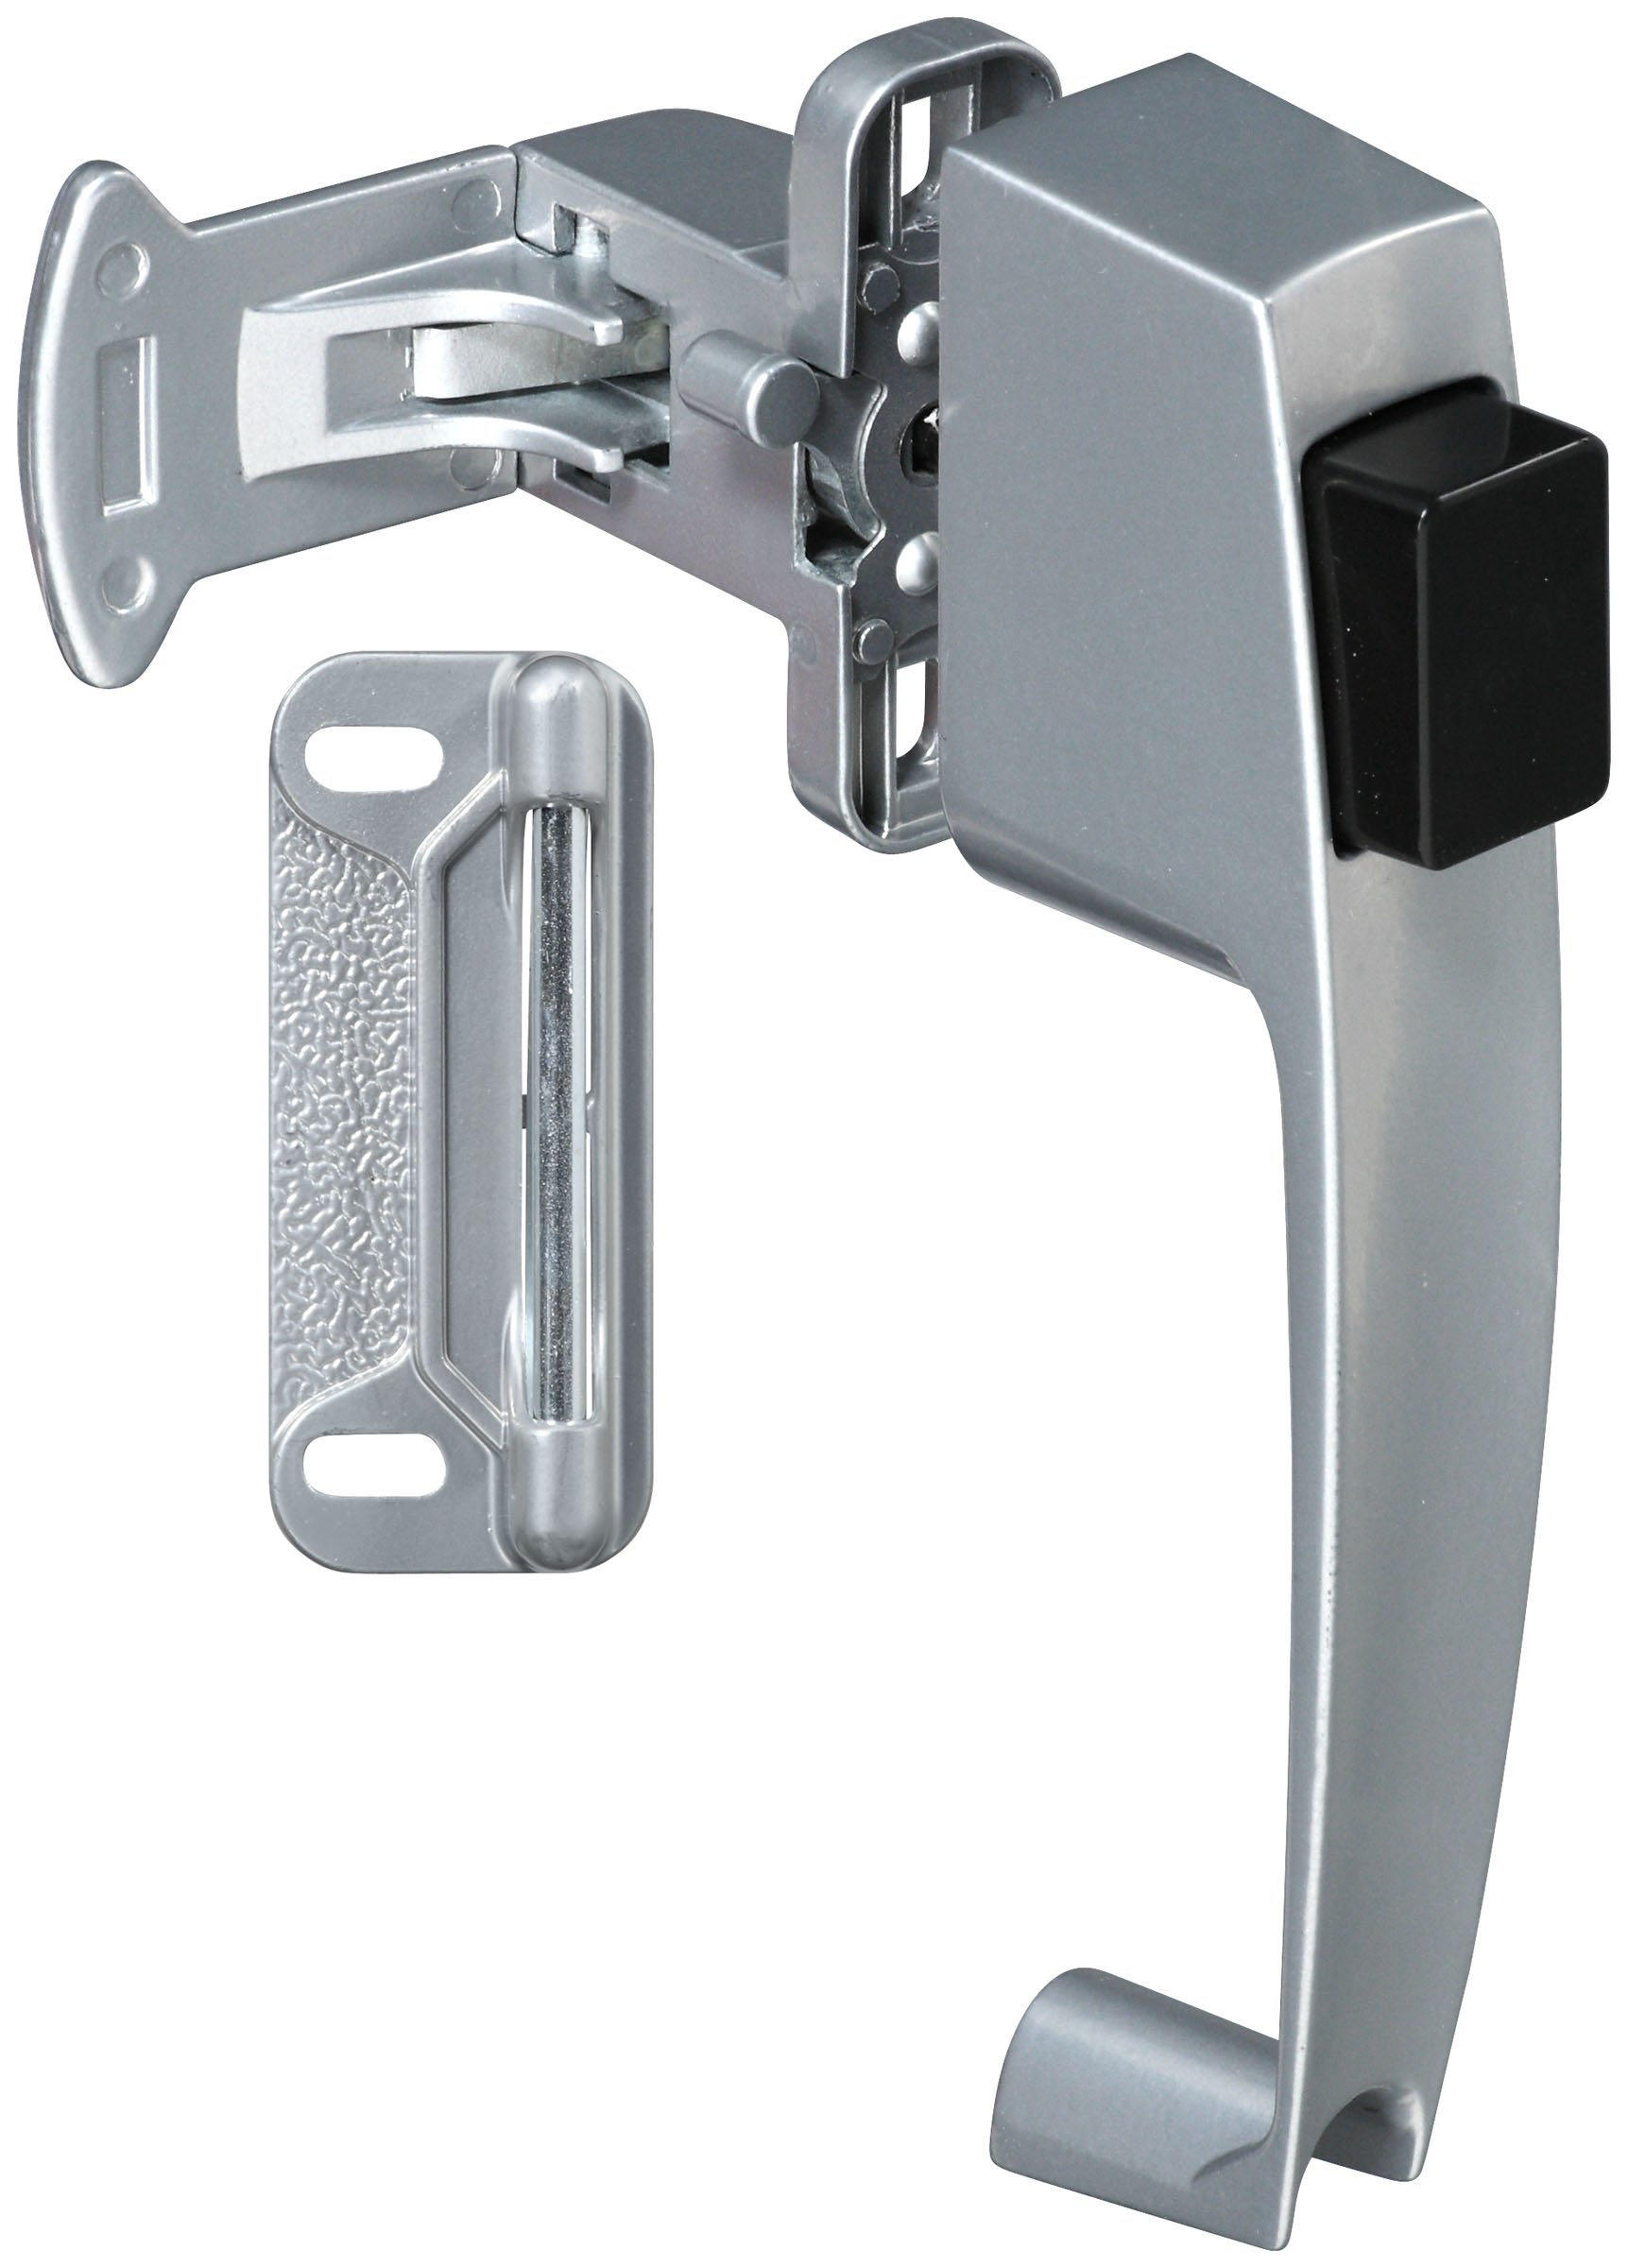 Stanley Hardware S128-033 CD1780 Pushbutton Latch in Clear Coated Aluminum